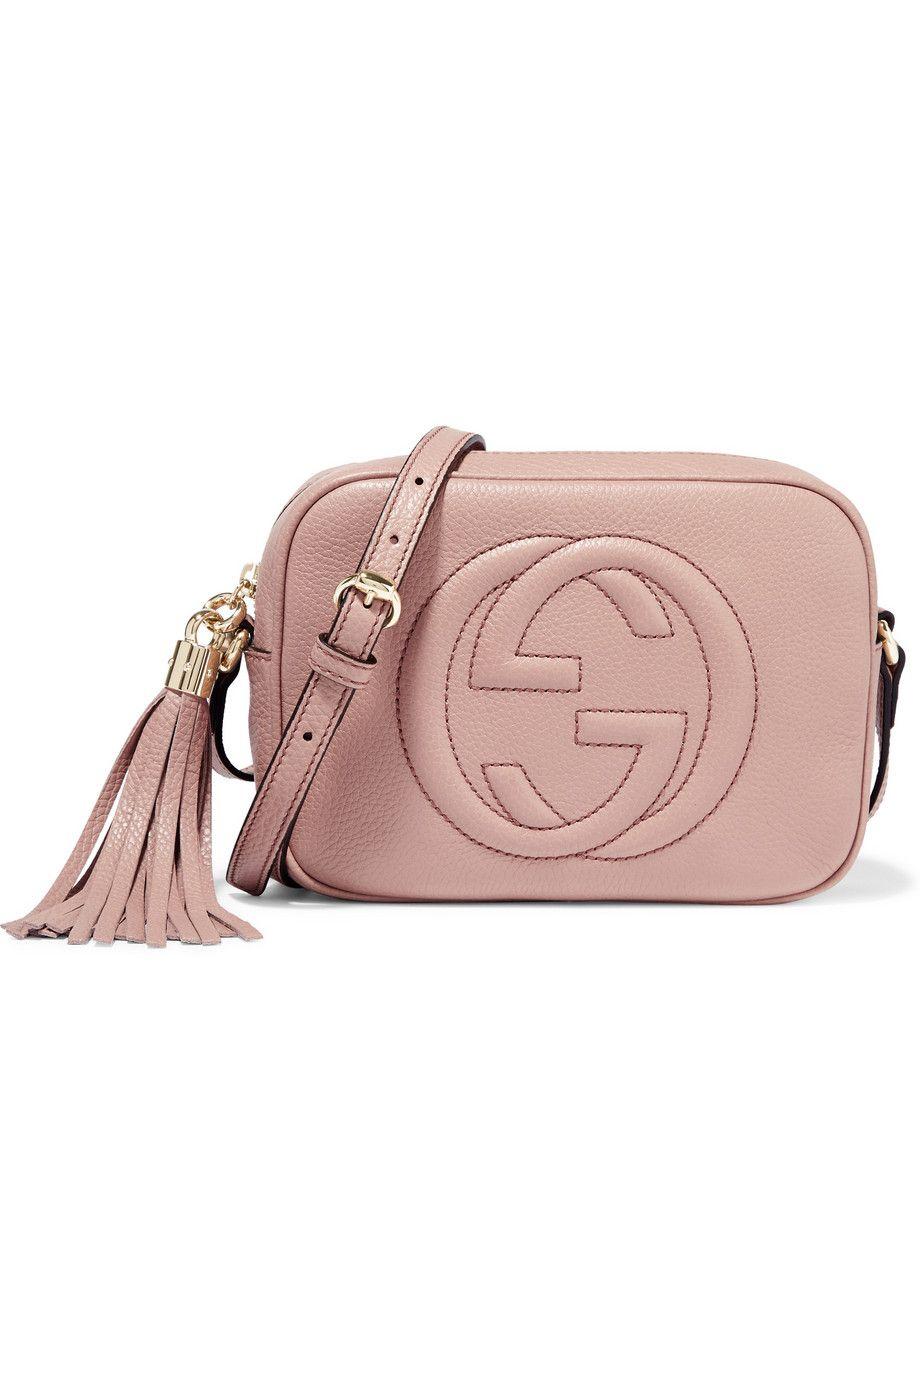 b3cc474d4b020 The Gucci Soho and Disco cross-bodies are all the hype right now